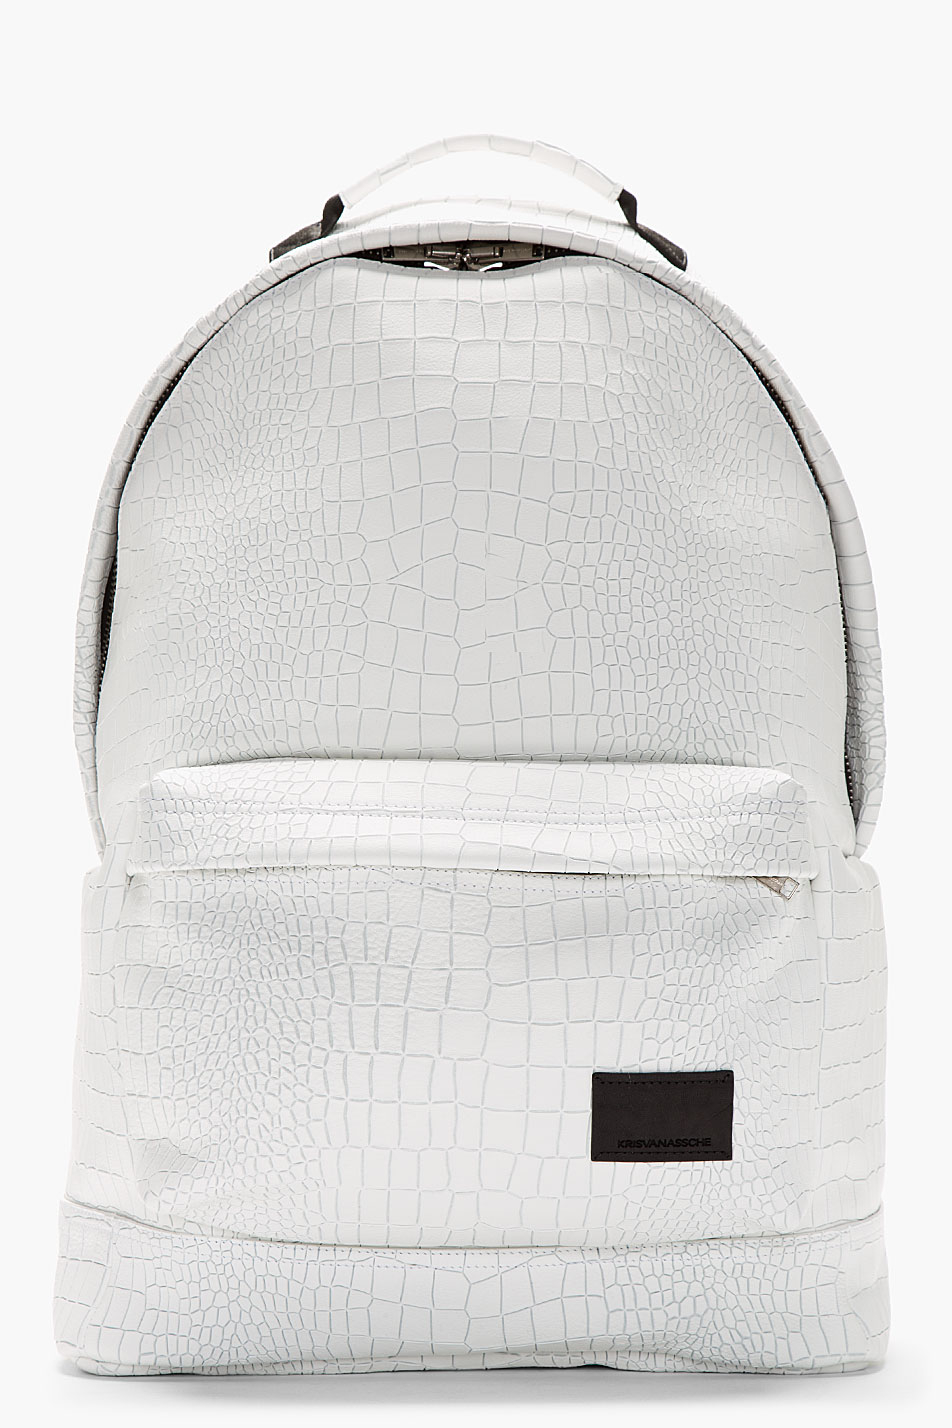 4e712c50ce12 Lyst - Kris Van Assche White Etched Croc Pattern Backpack in White ...